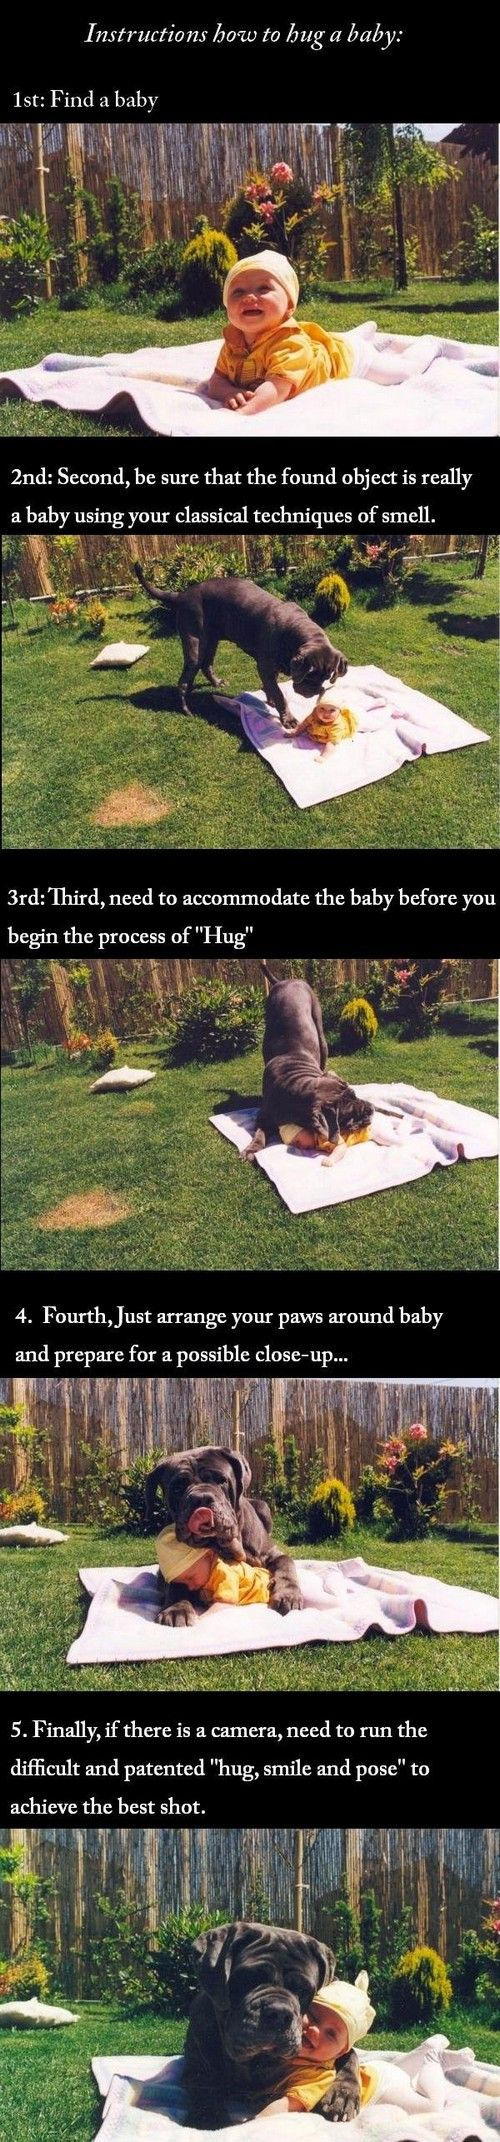 how to hug a babyStuff, Hug, Awwwwww Lolzzz, Funny, Adorable, Baby, Smile, Big Dogs, Animal